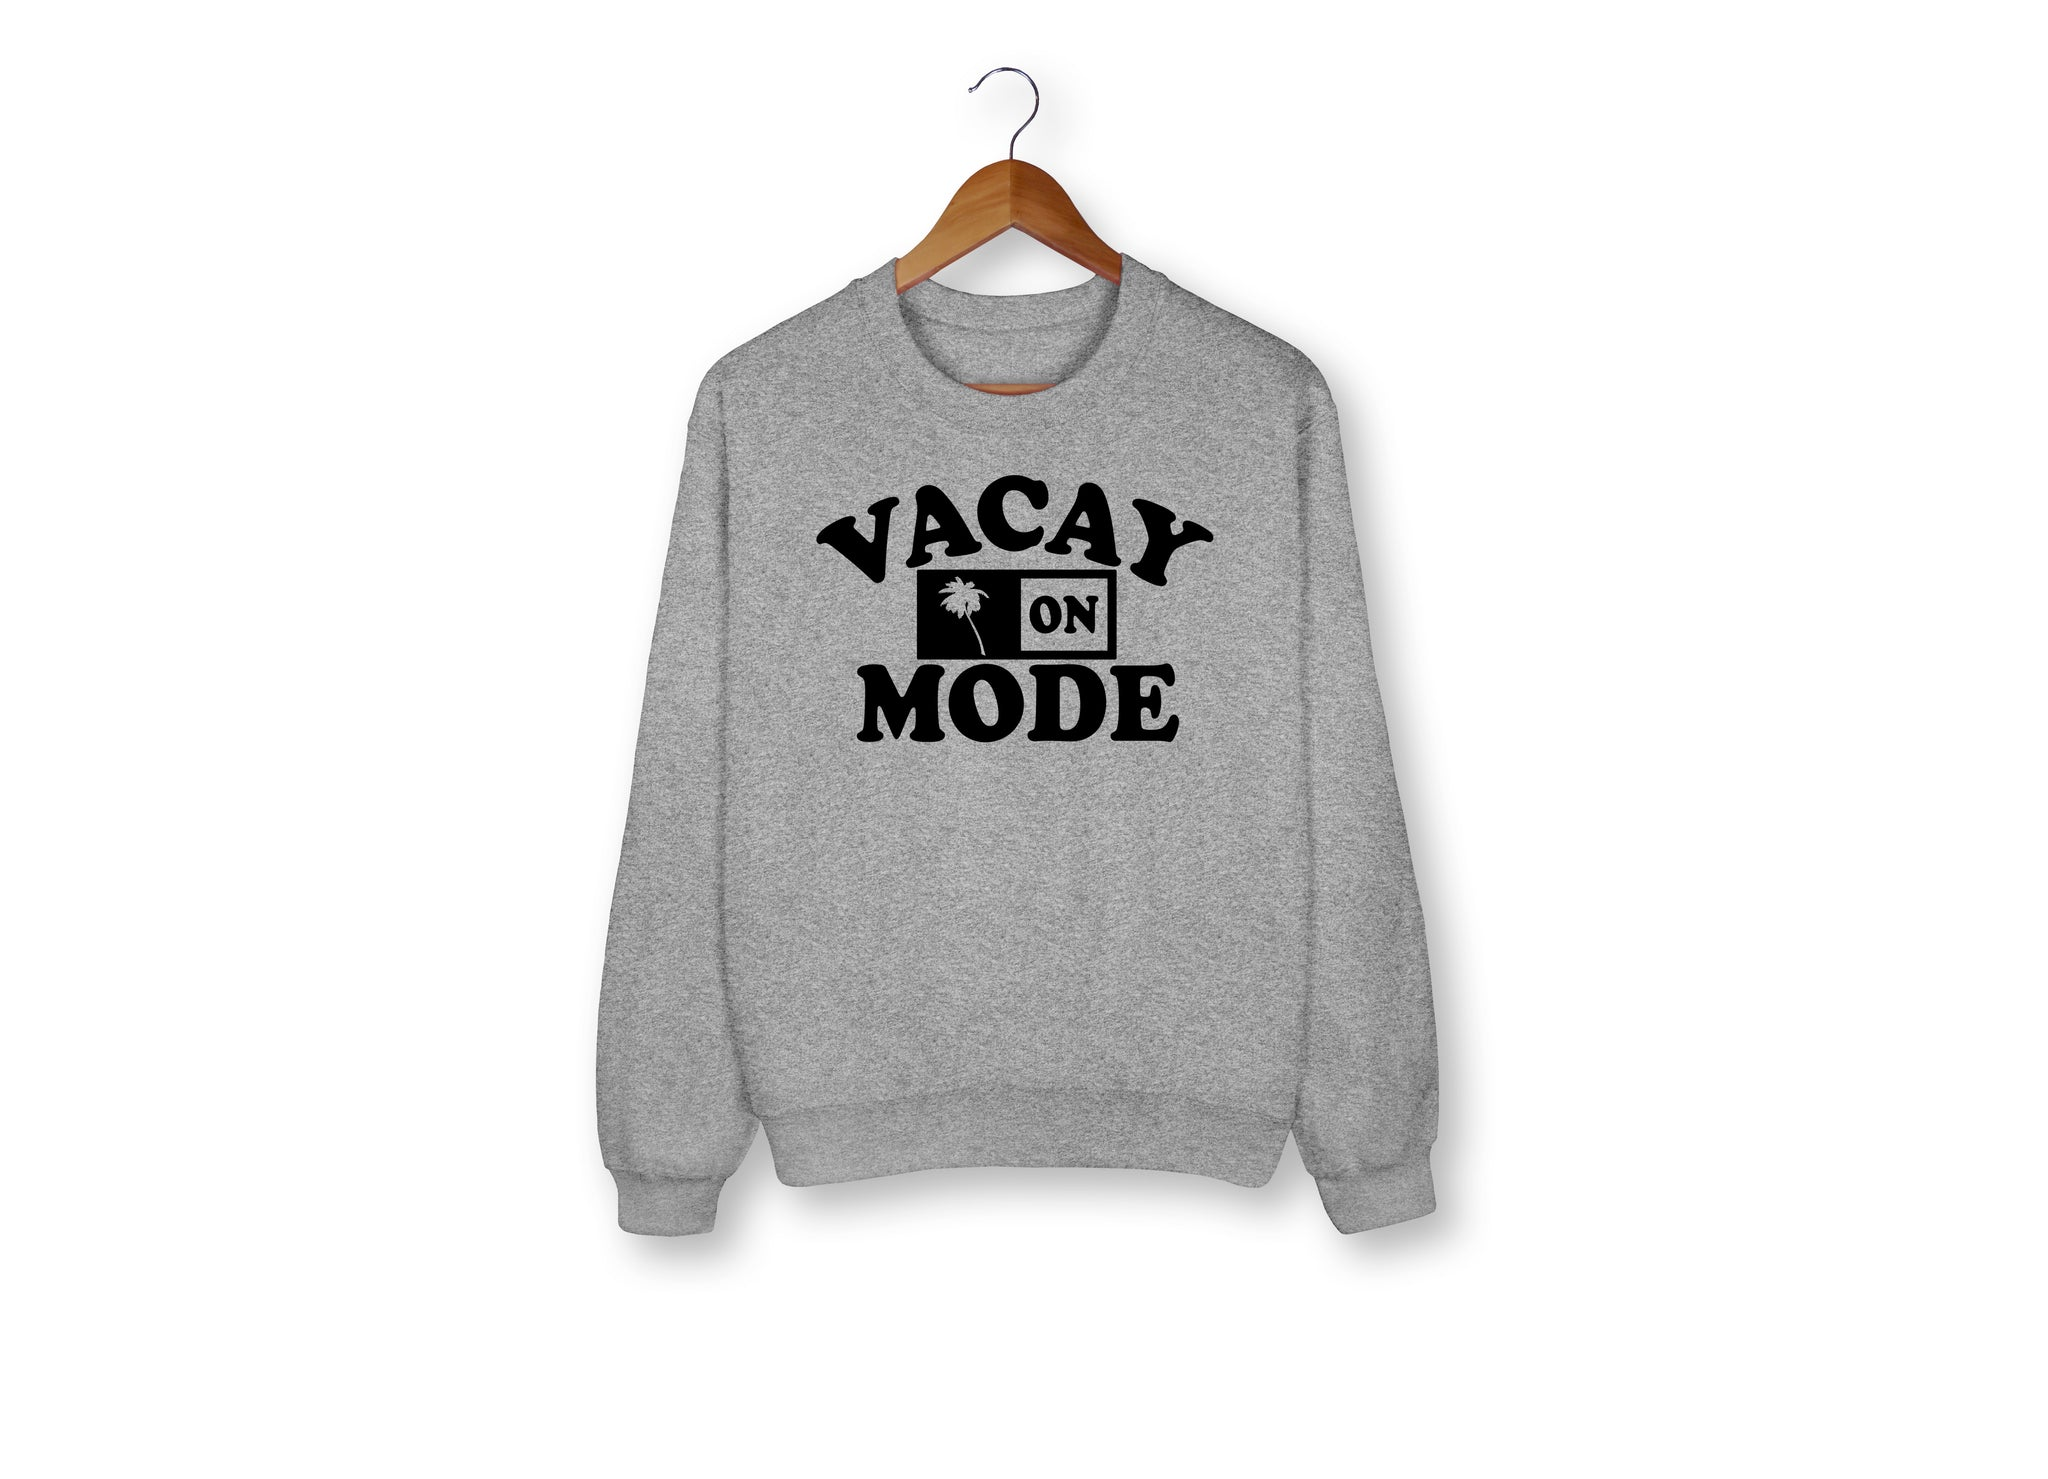 Vacay Mode On Sweatshirt